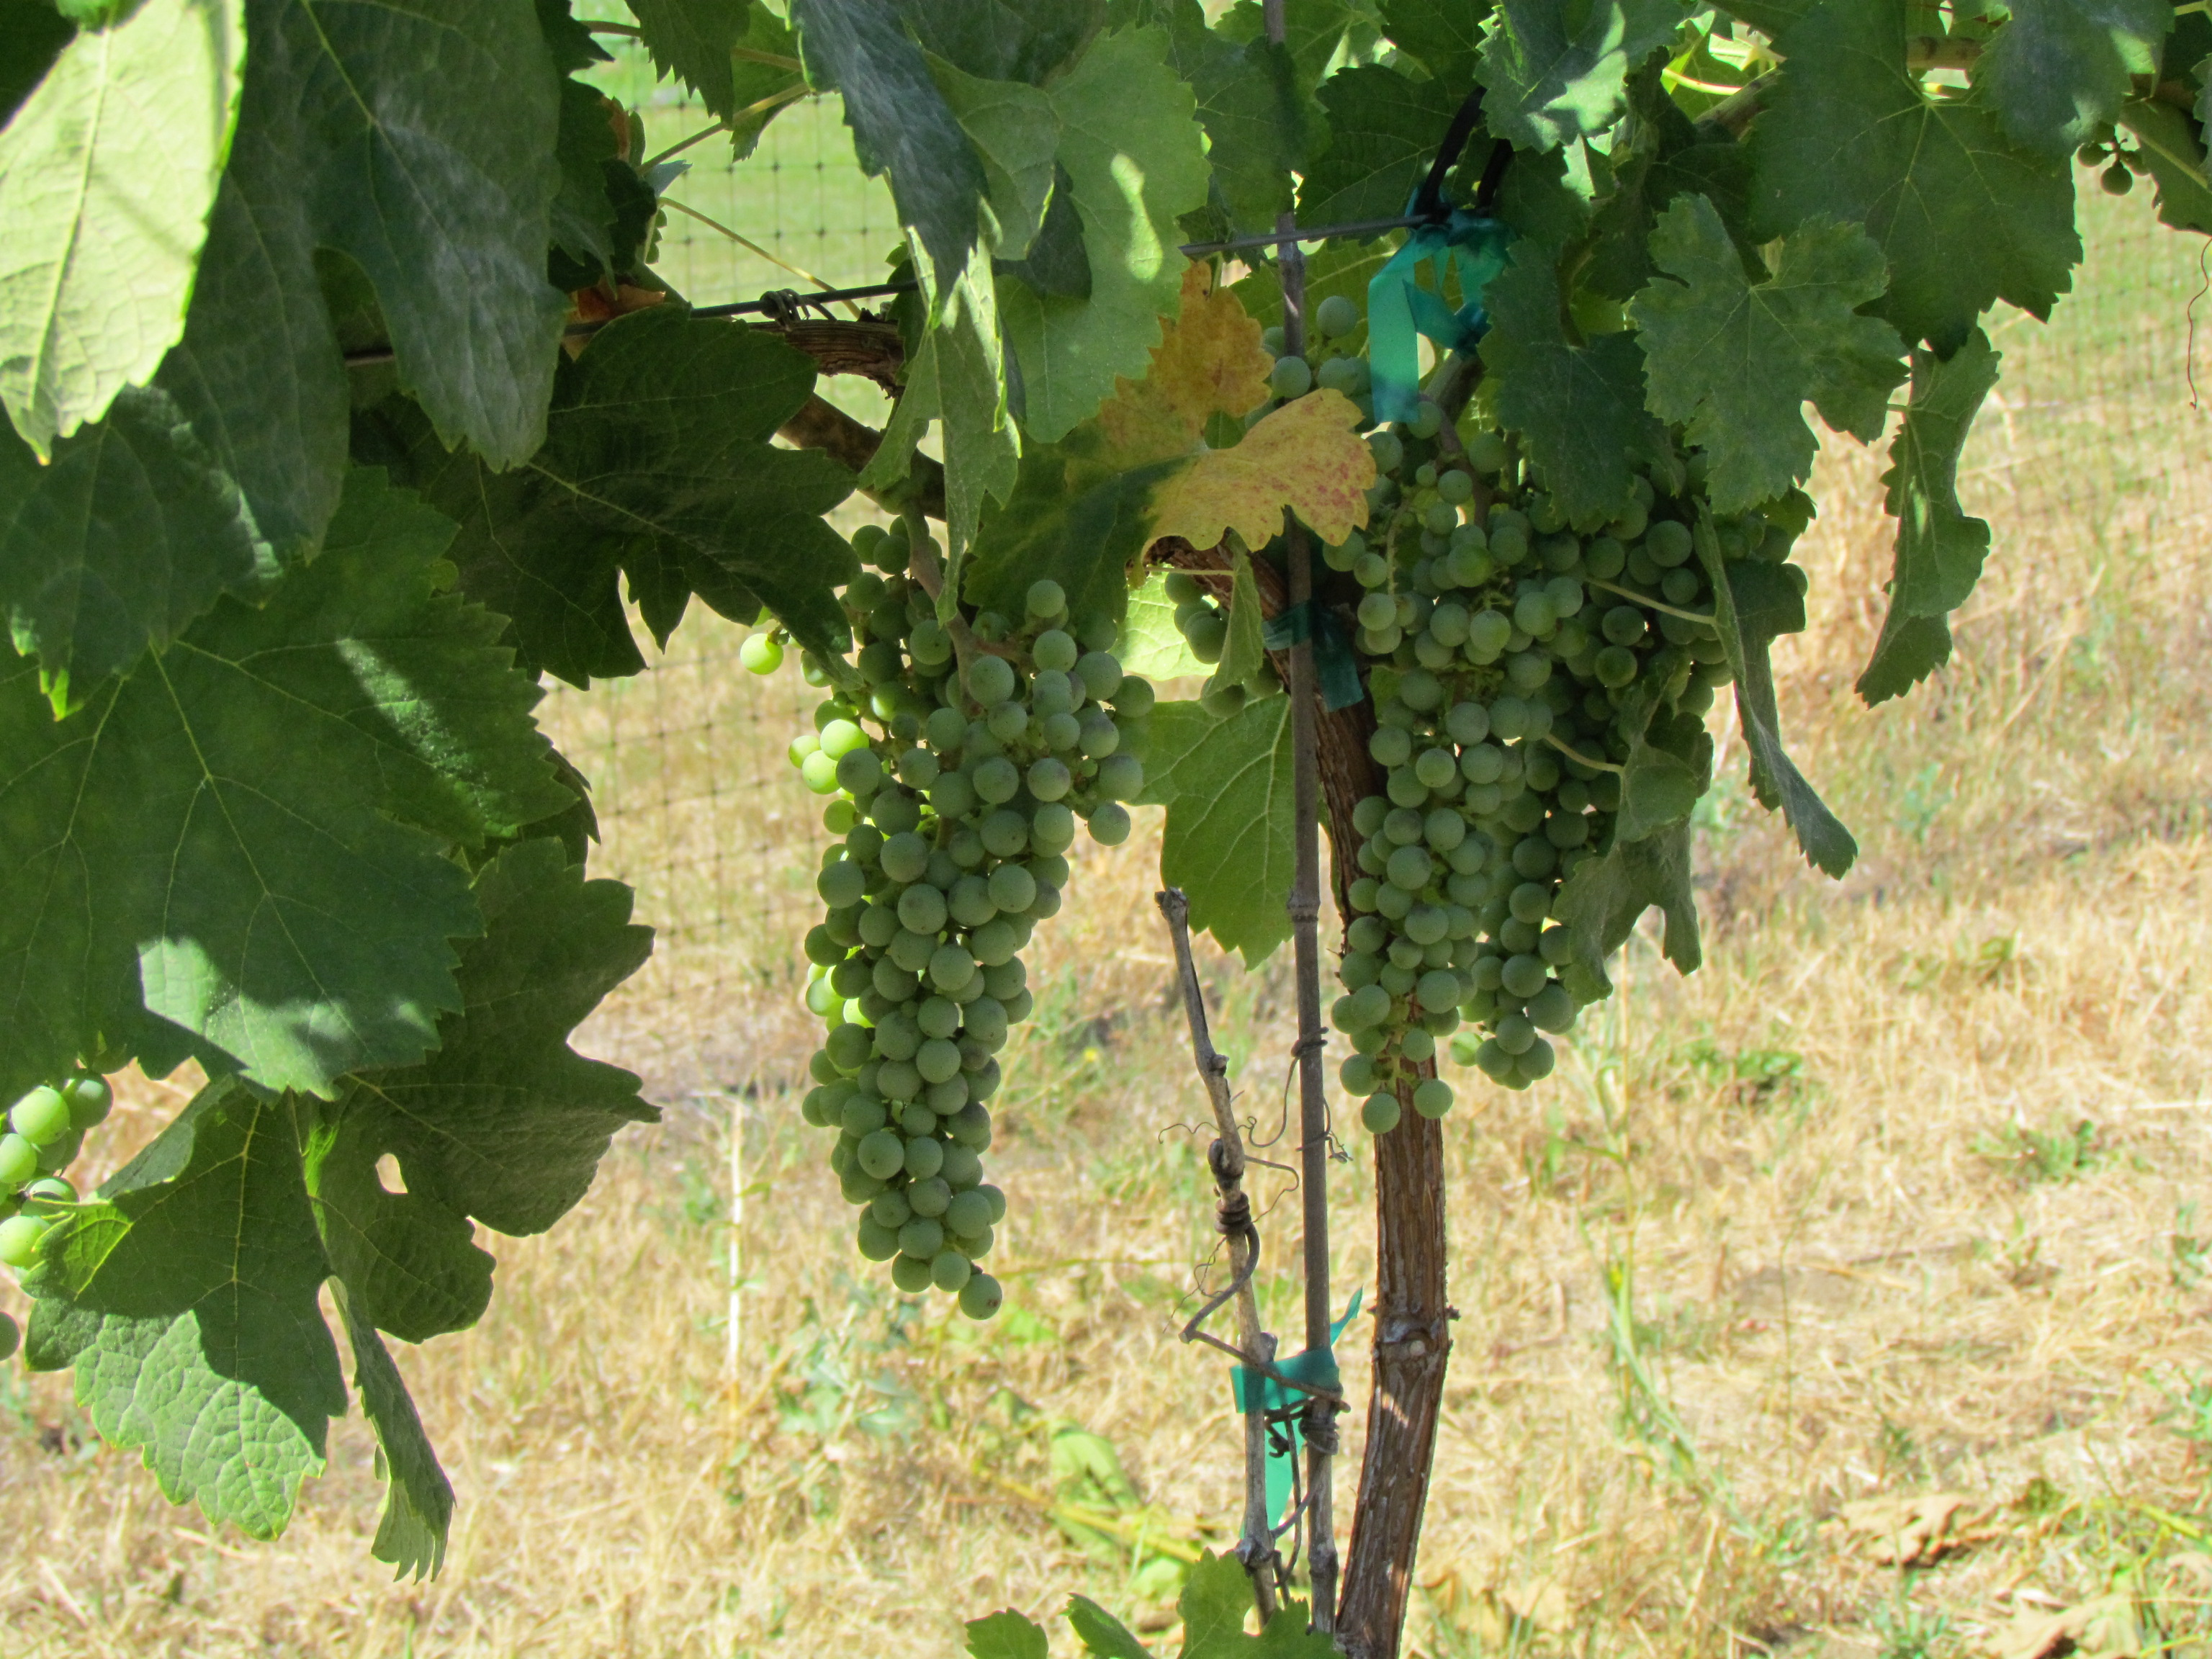 Vineyard with grapes 9 (10).JPG